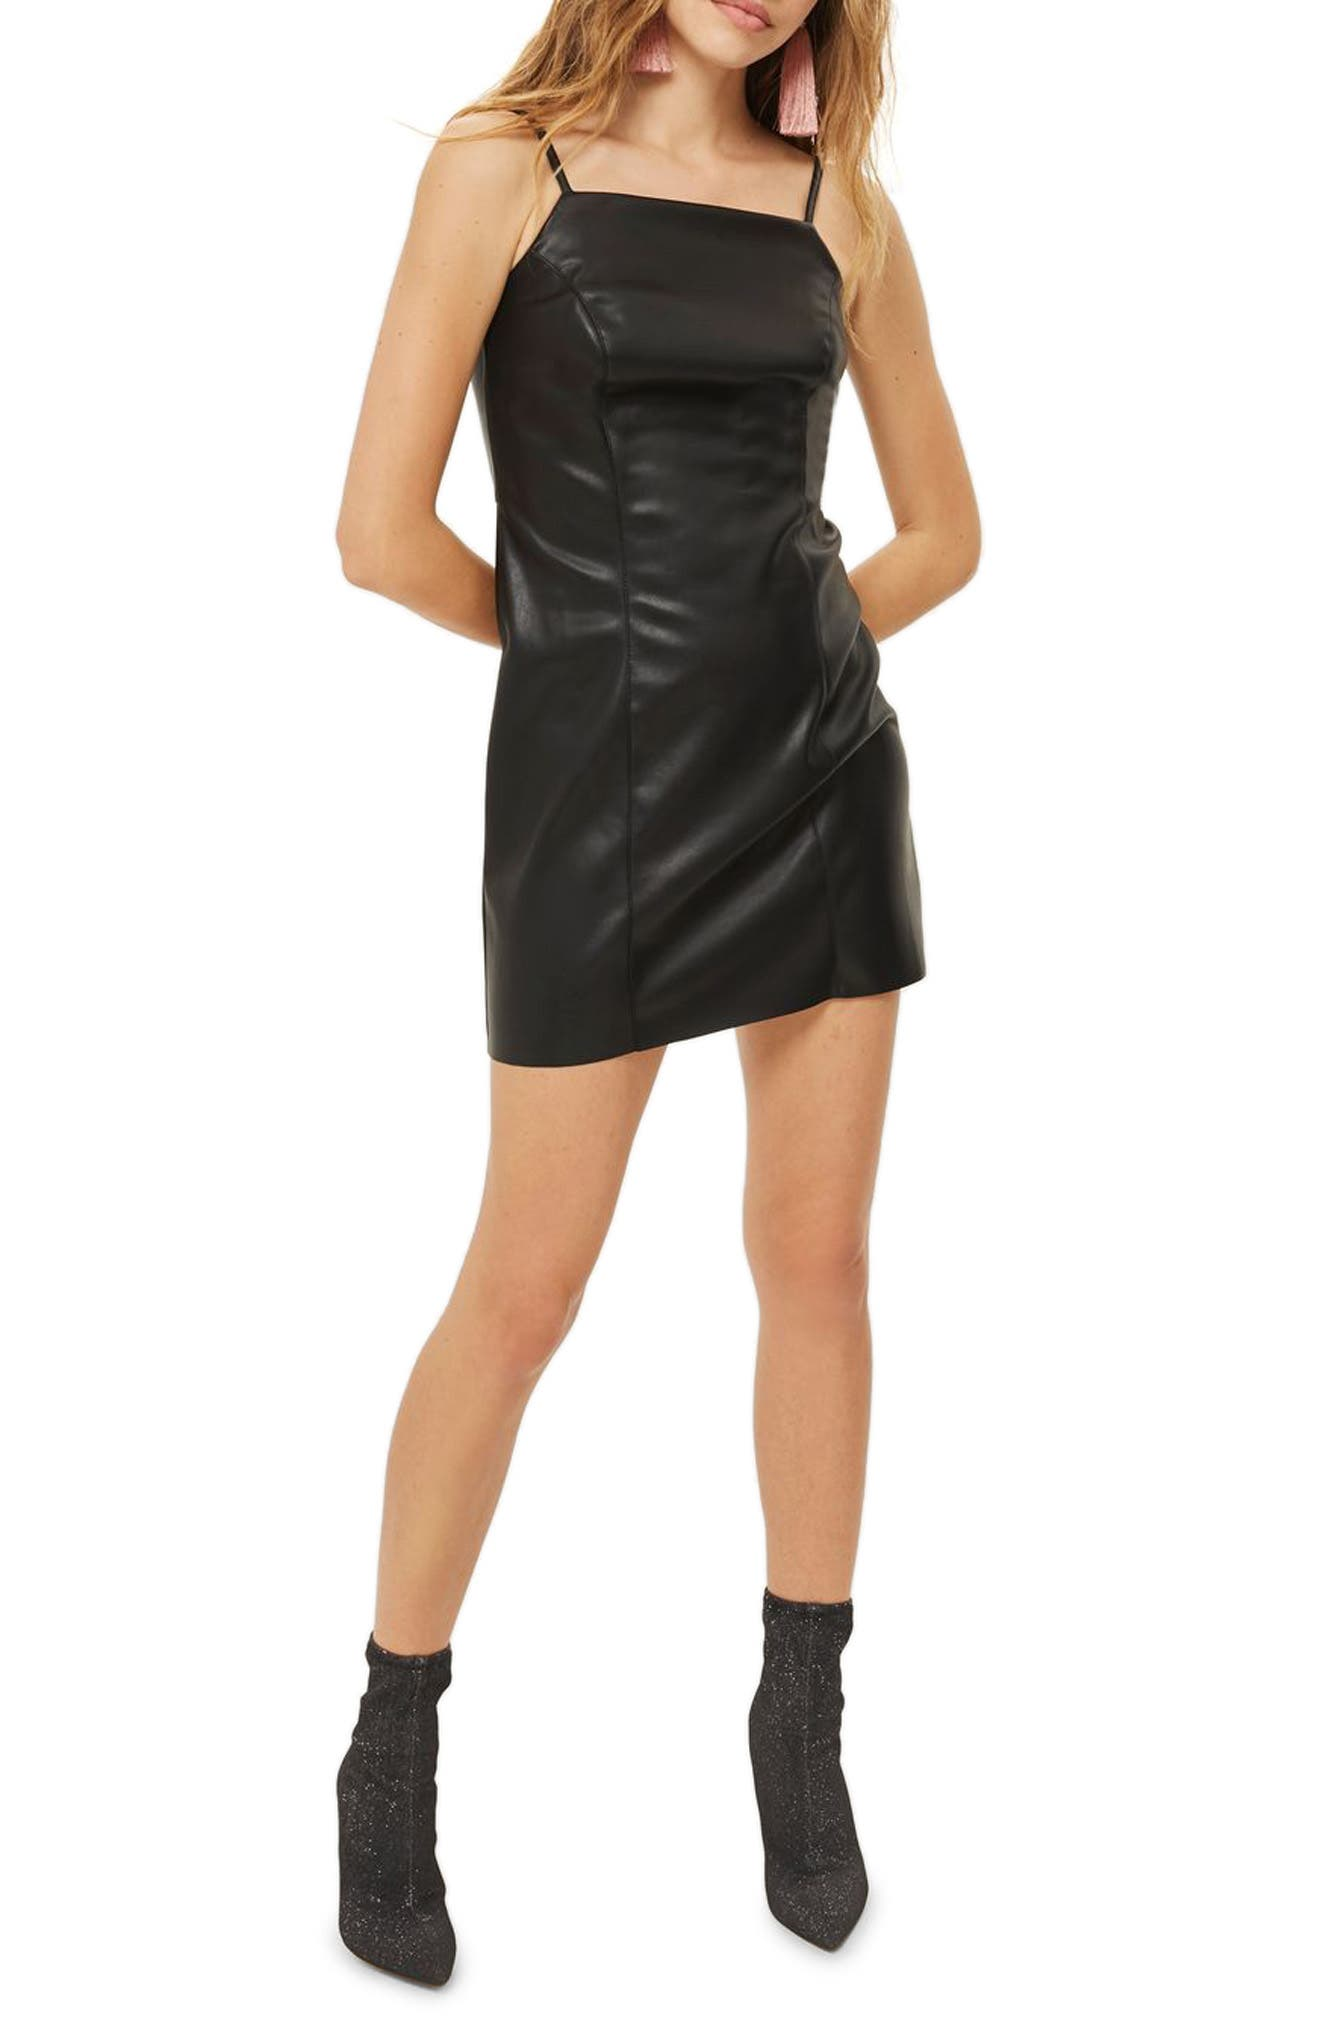 Topshop Faux Leather Slipdress